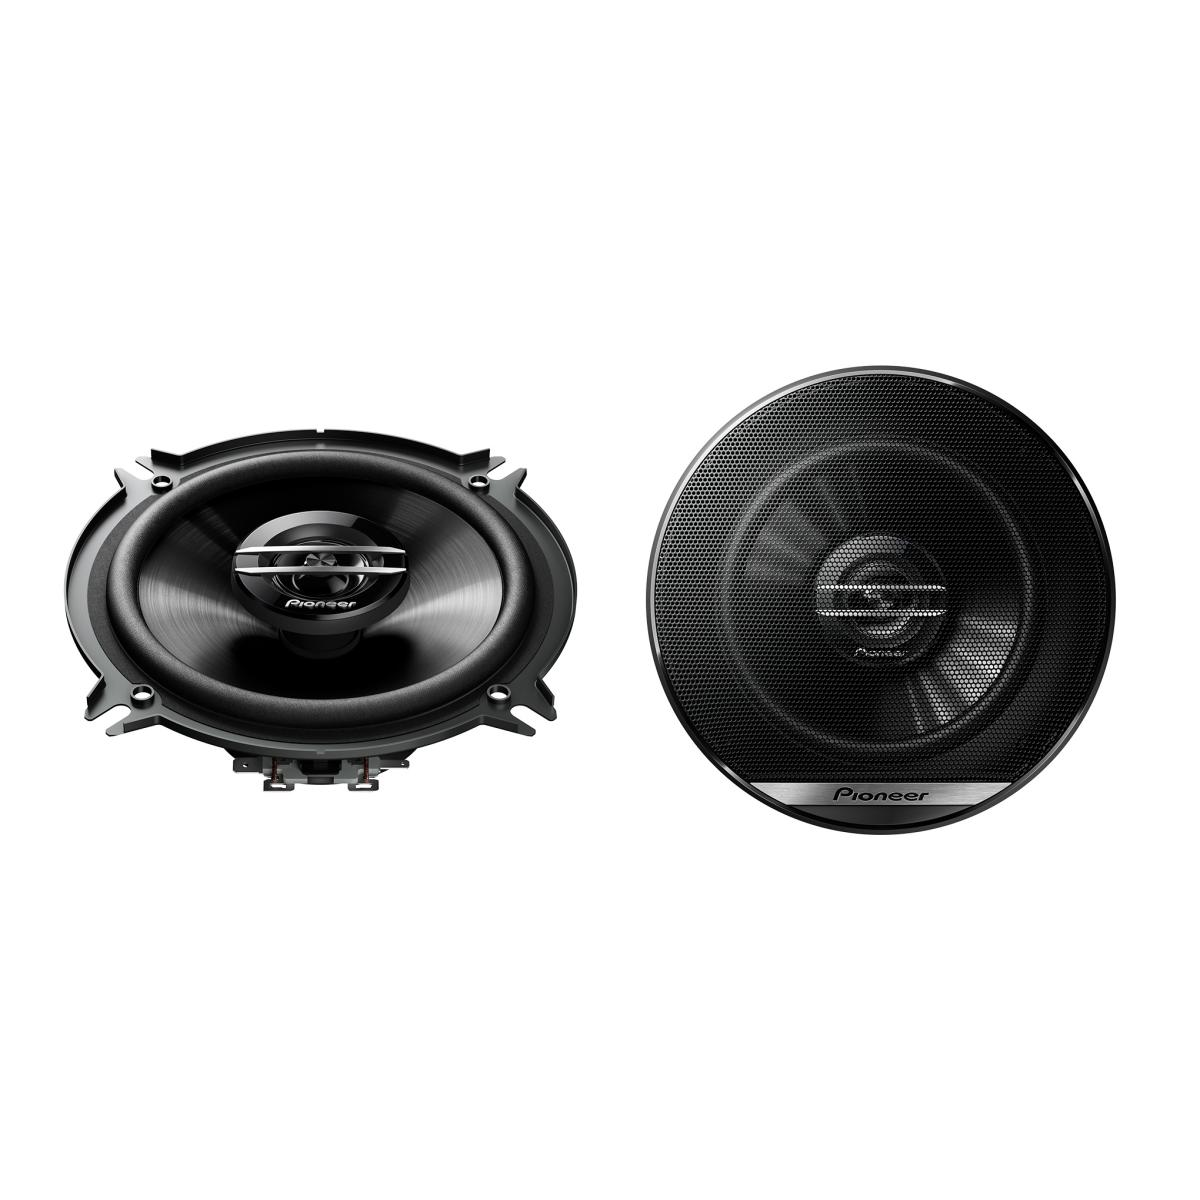 pioneer ts g1320f 13cm 2way 240w speakers with grills. Black Bedroom Furniture Sets. Home Design Ideas